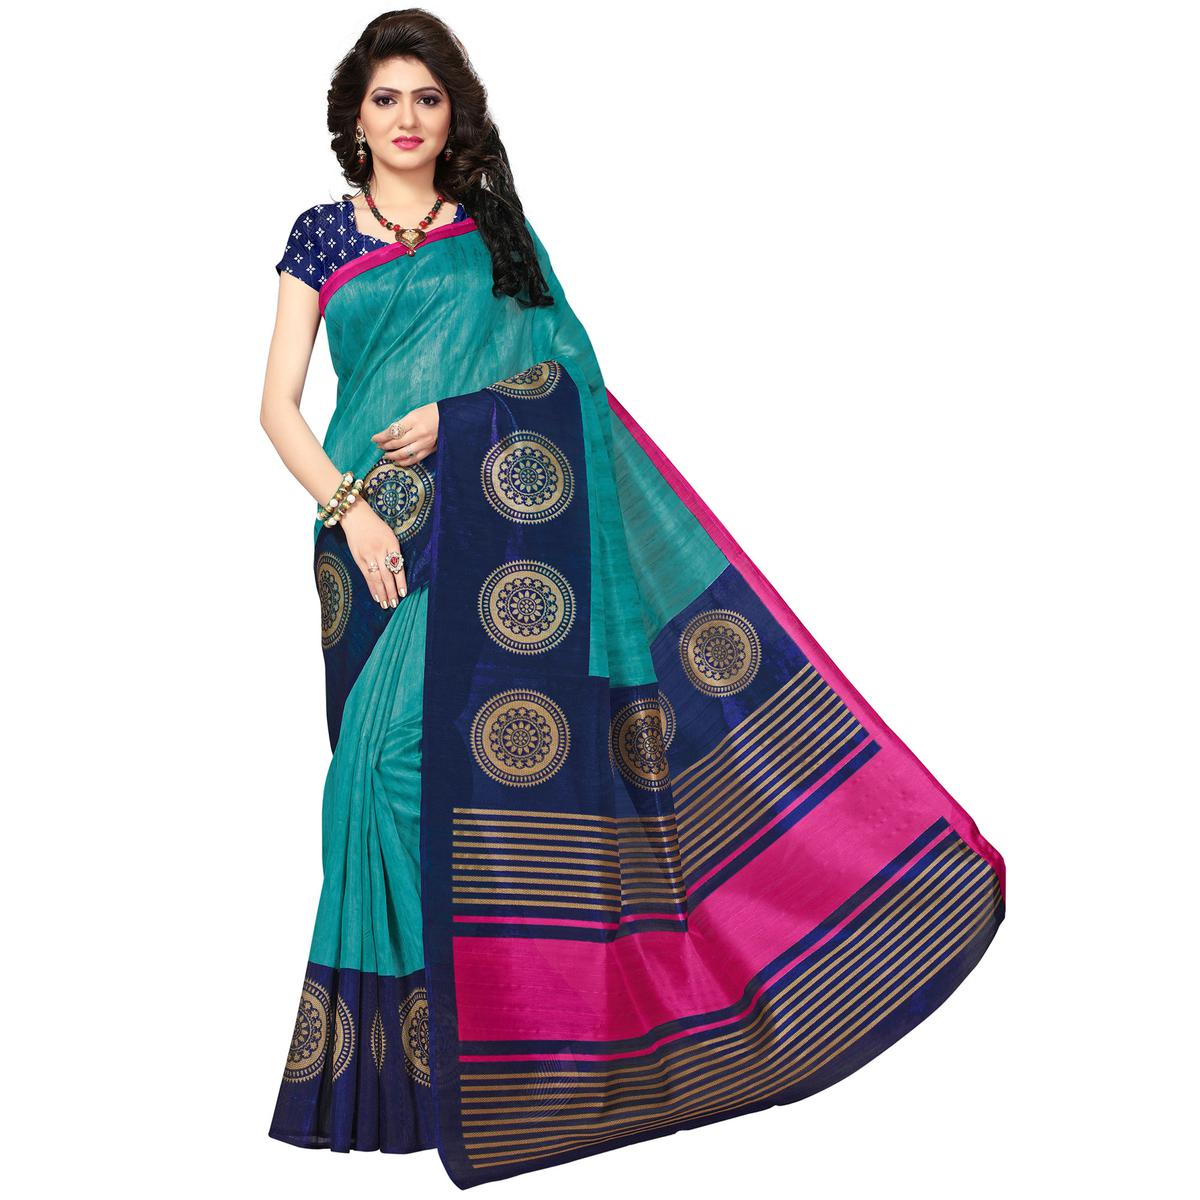 Gorgeous Turquoise Blue Colored Casual Printed Bhagalpuri Silk Saree